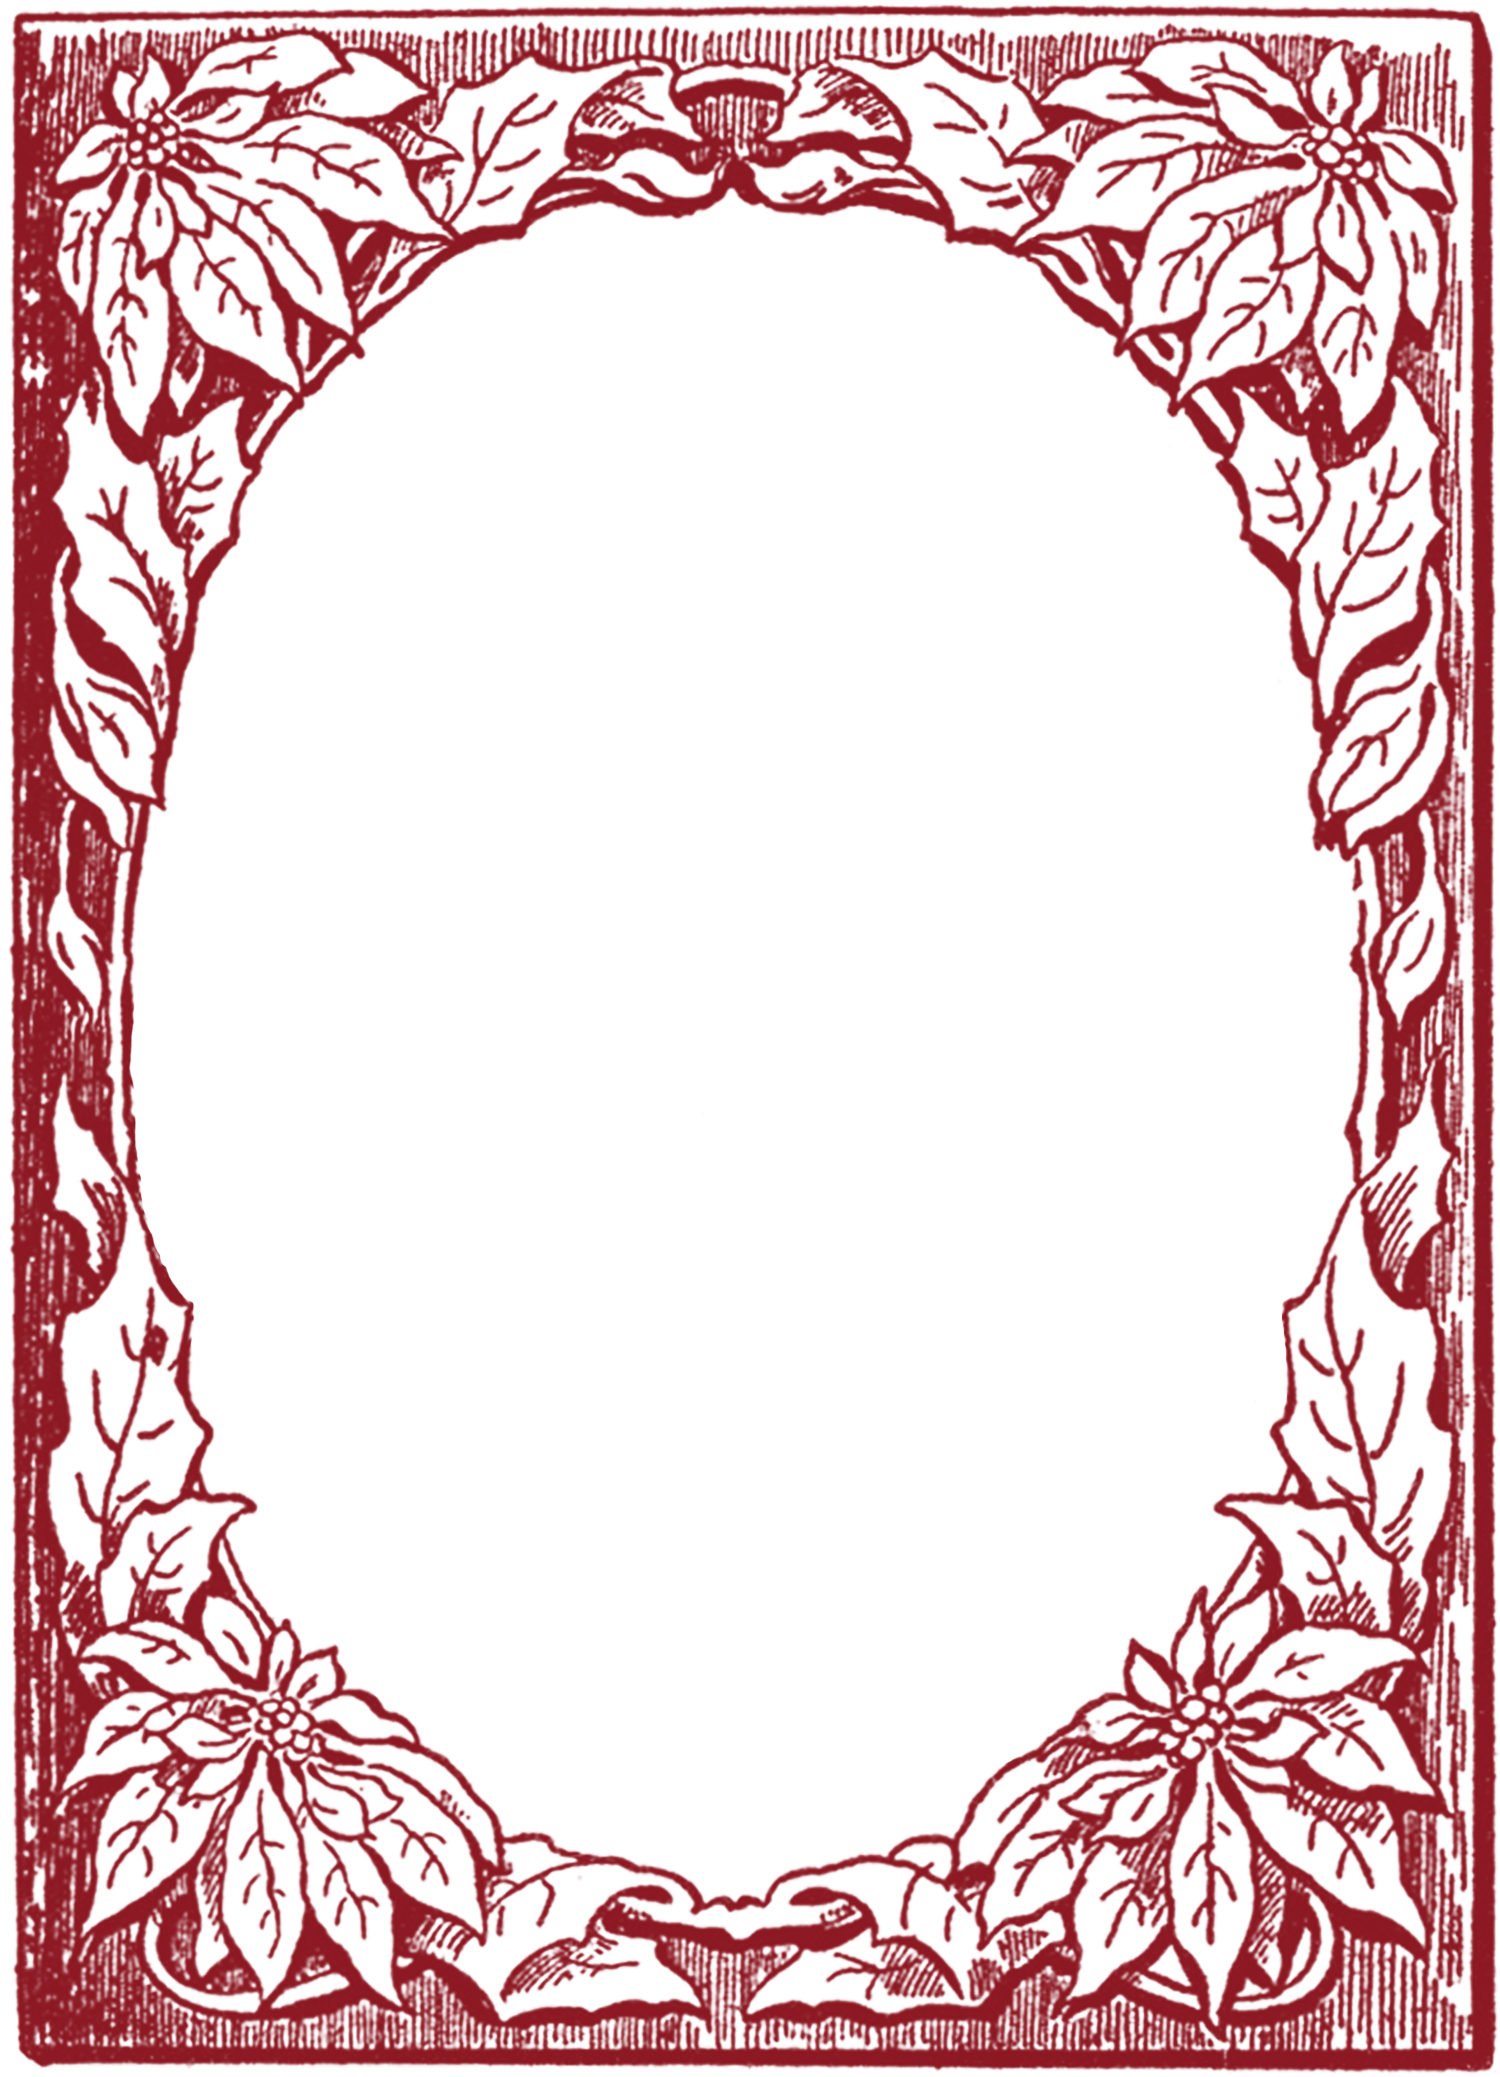 Poinsettia Frame Images - The Graphics Fairy